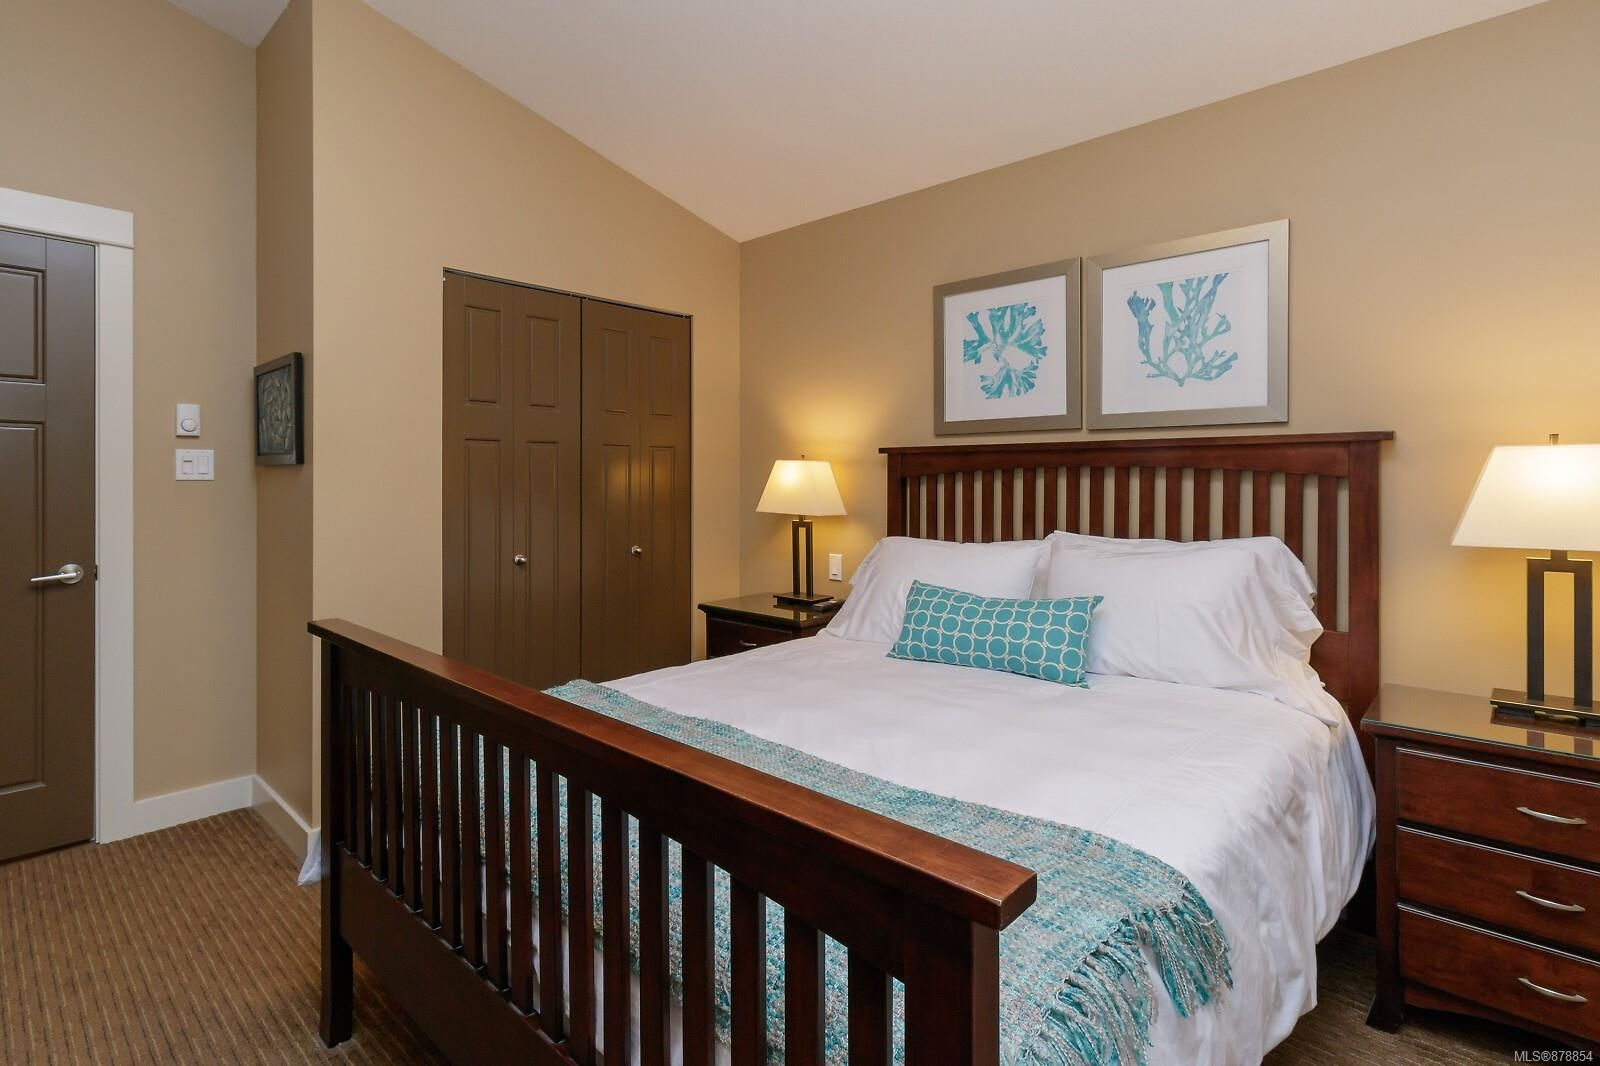 Photo 10: Photos: 223 1130 Resort Dr in : PQ Parksville Row/Townhouse for sale (Parksville/Qualicum)  : MLS®# 878854